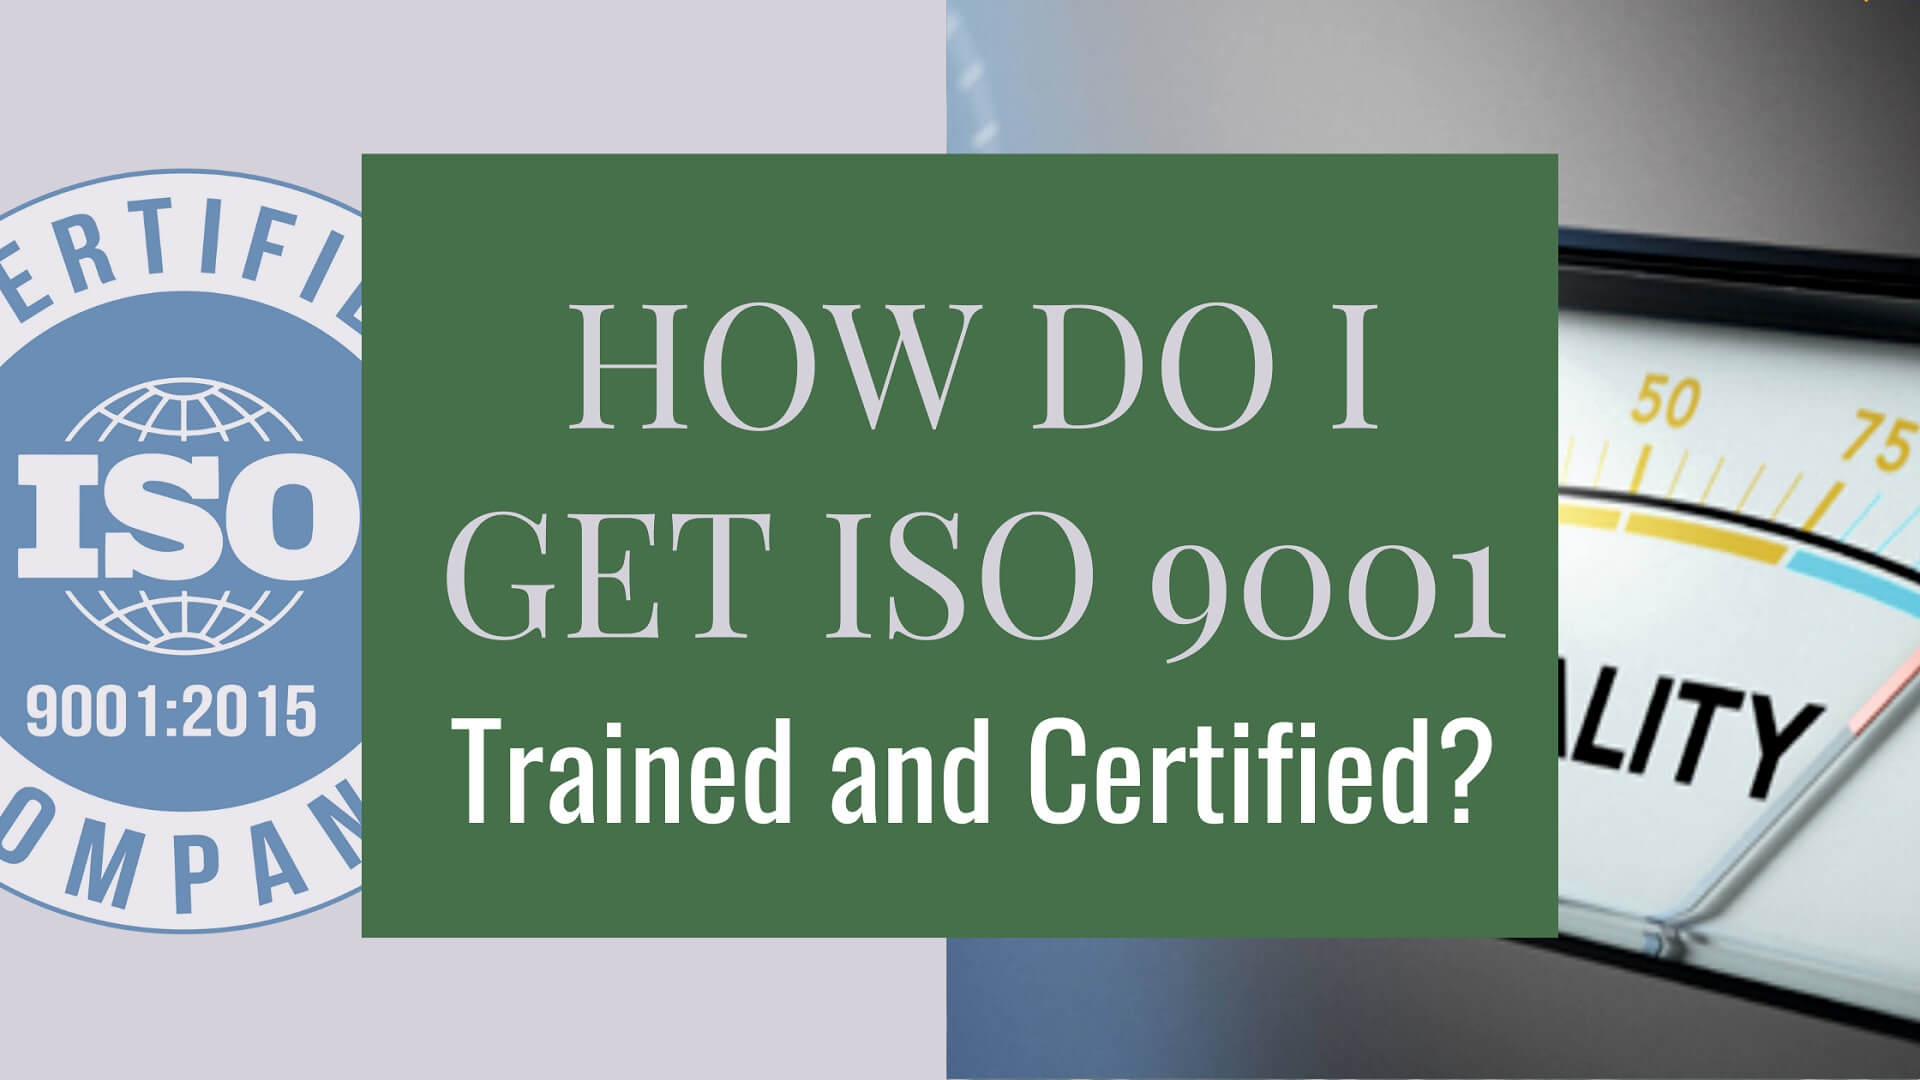 How Do I get ISO 9001 Trained and Certified